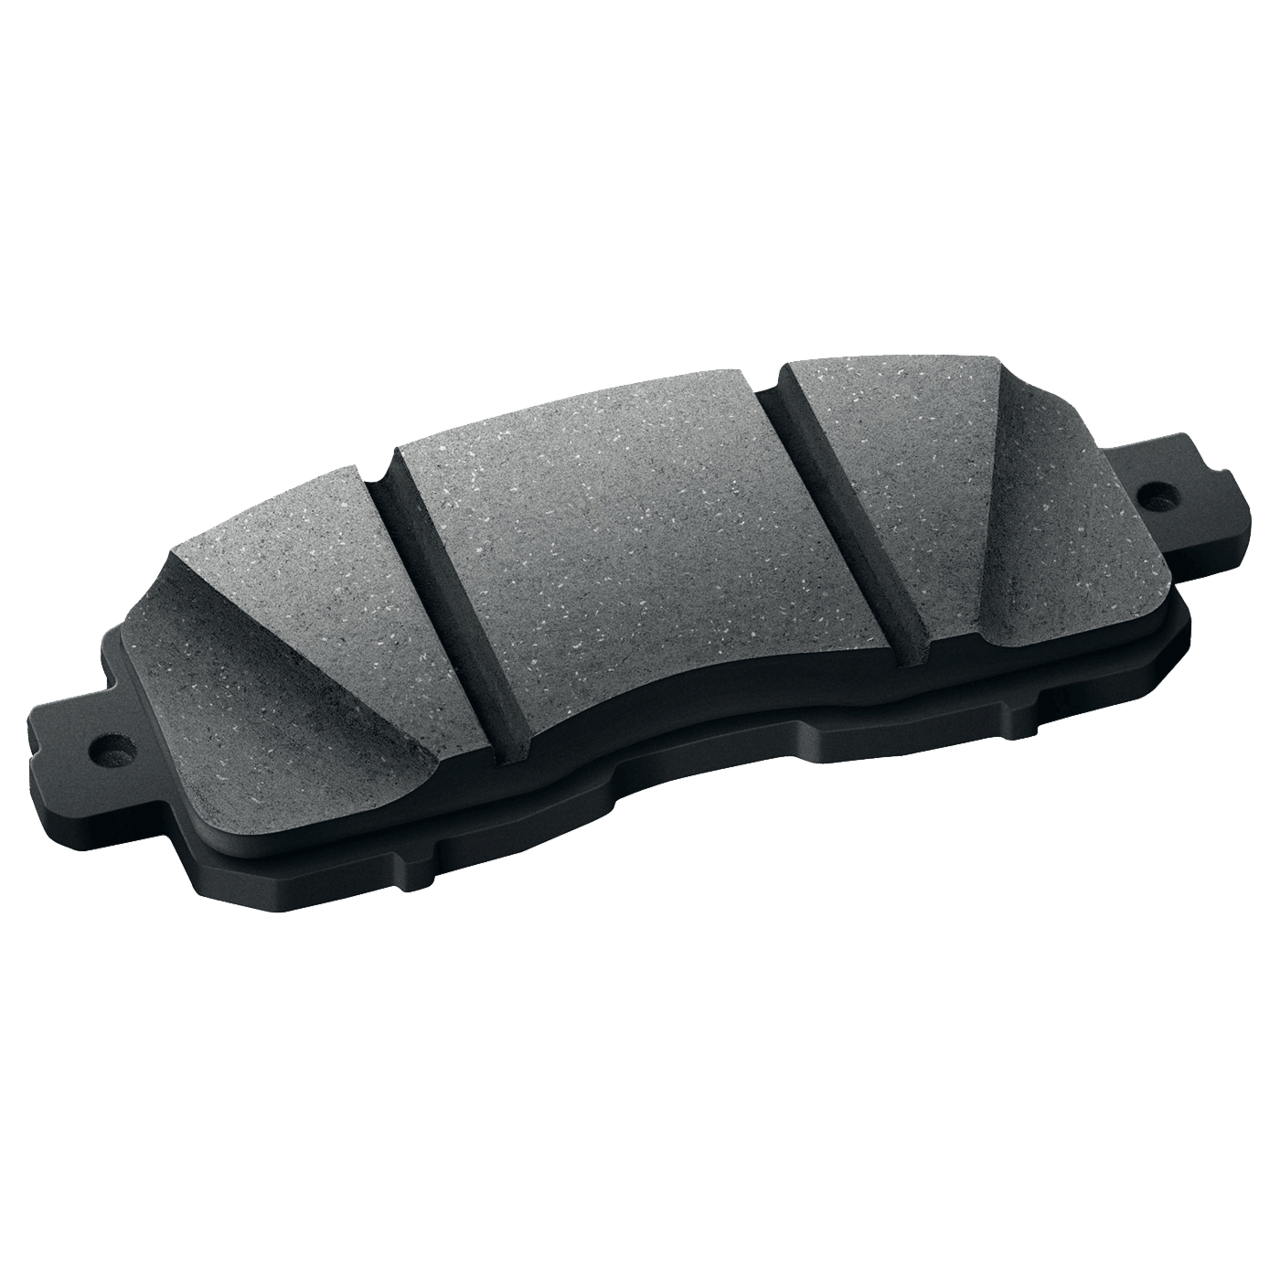 Top 5 Excellent Brake Pads to Use This Rainy Season